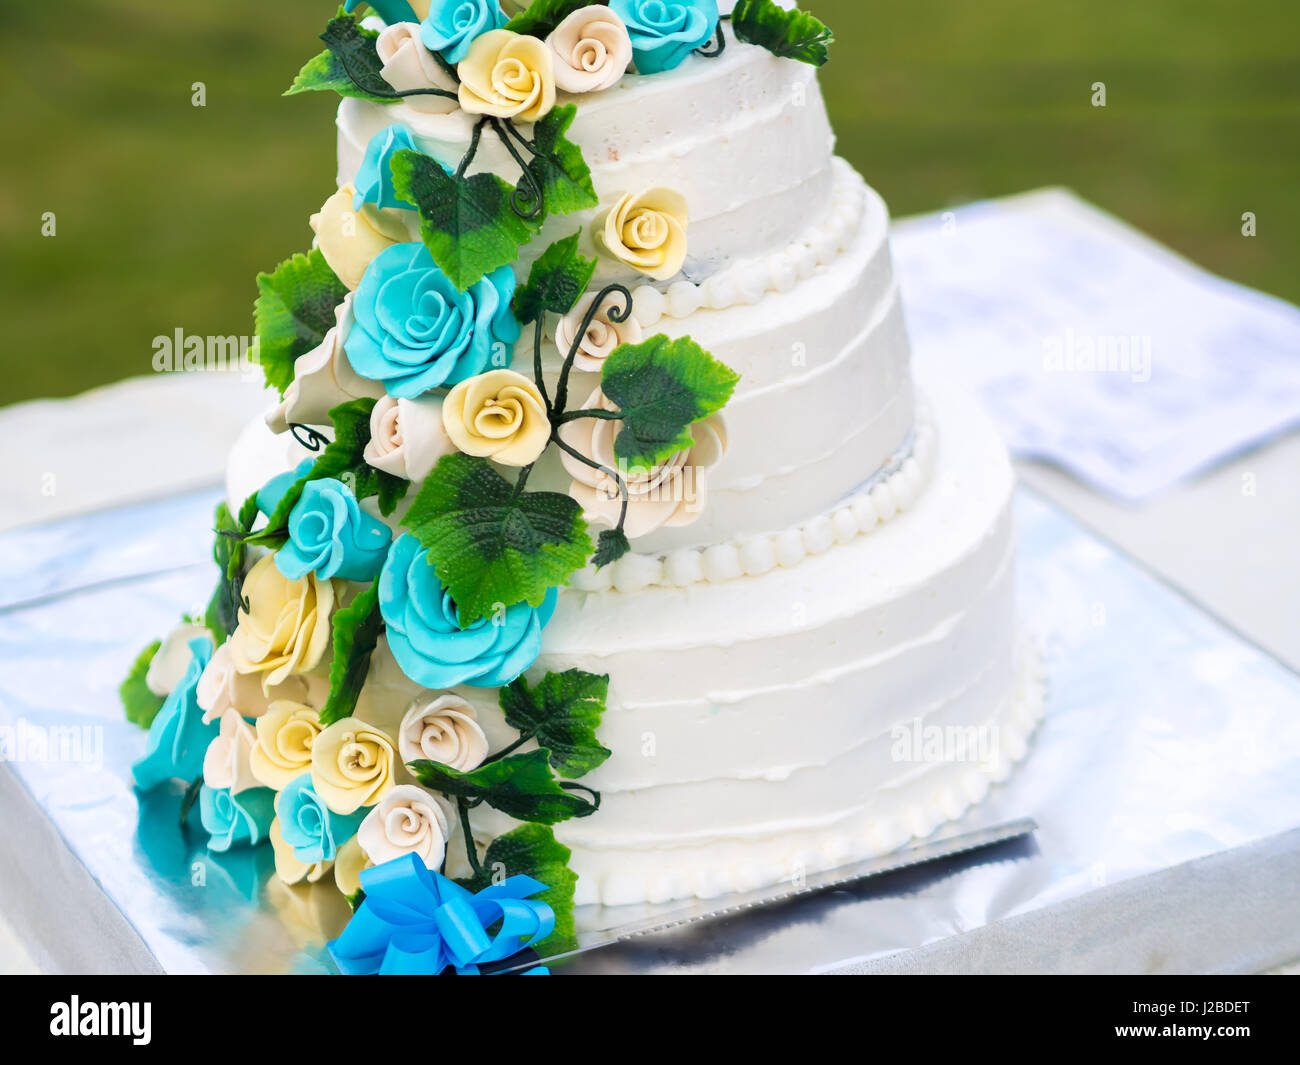 Beautiful wedding cake with blue and yellow roses - Stock Image